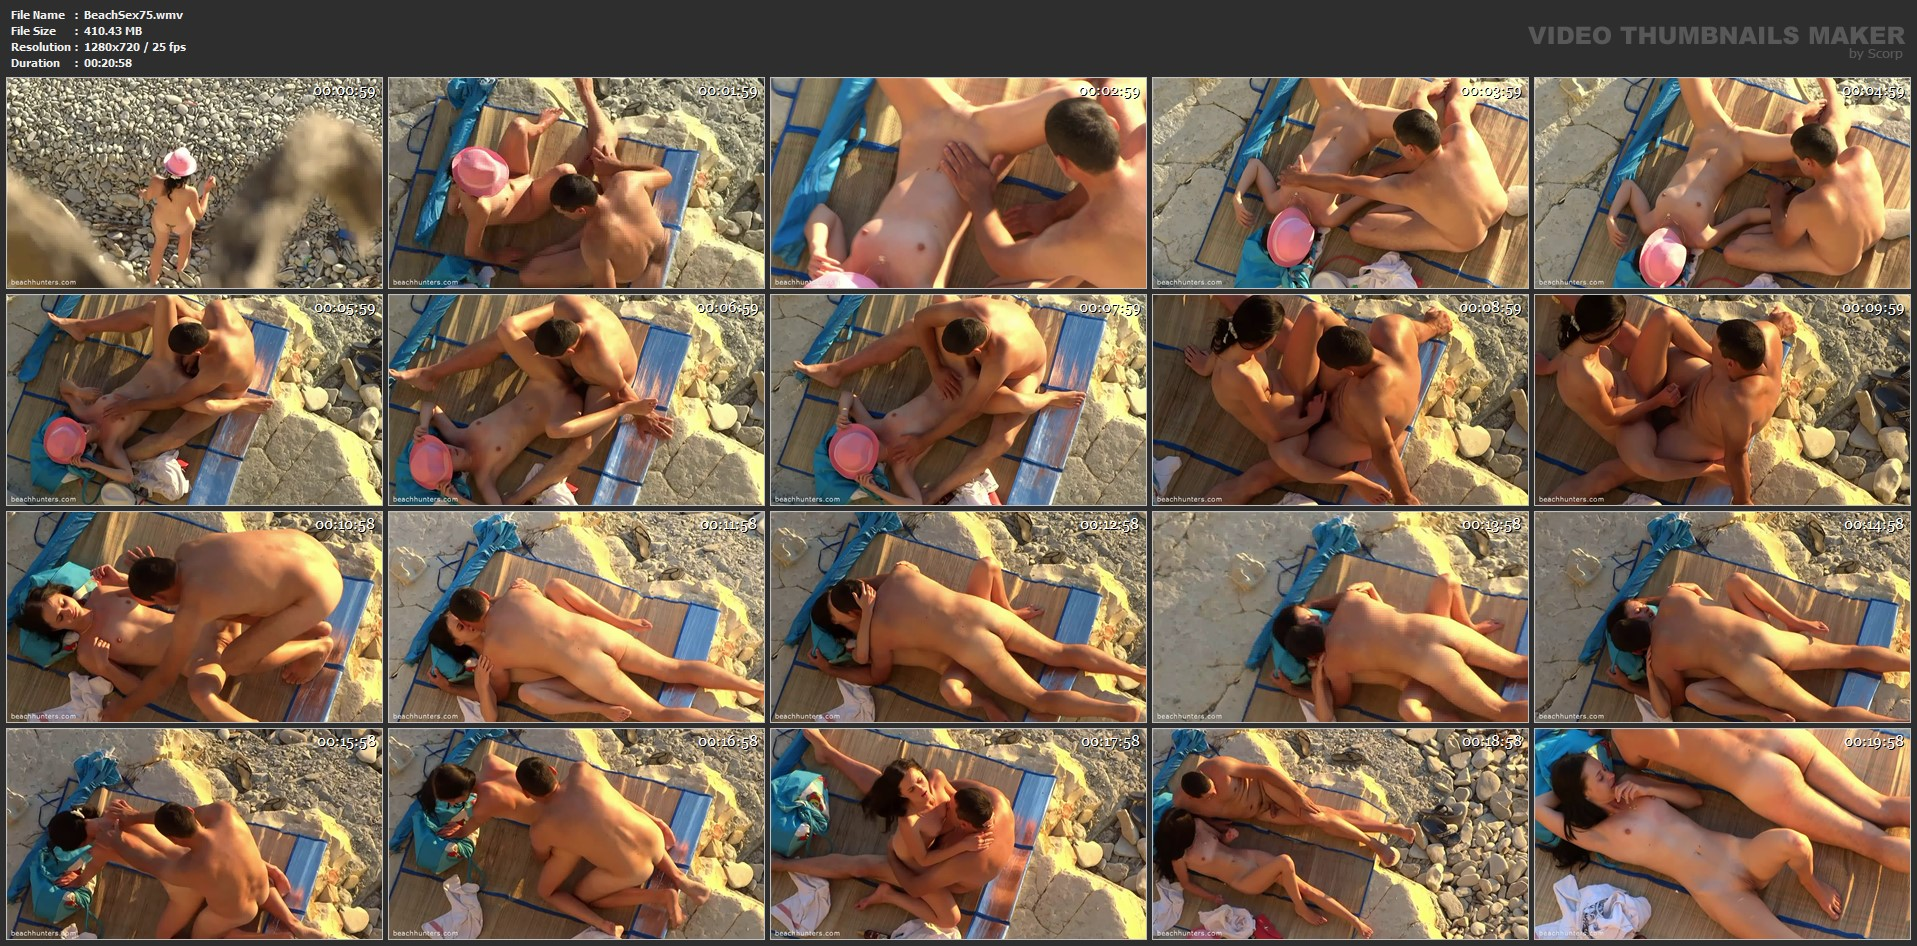 beachsex75-wmv